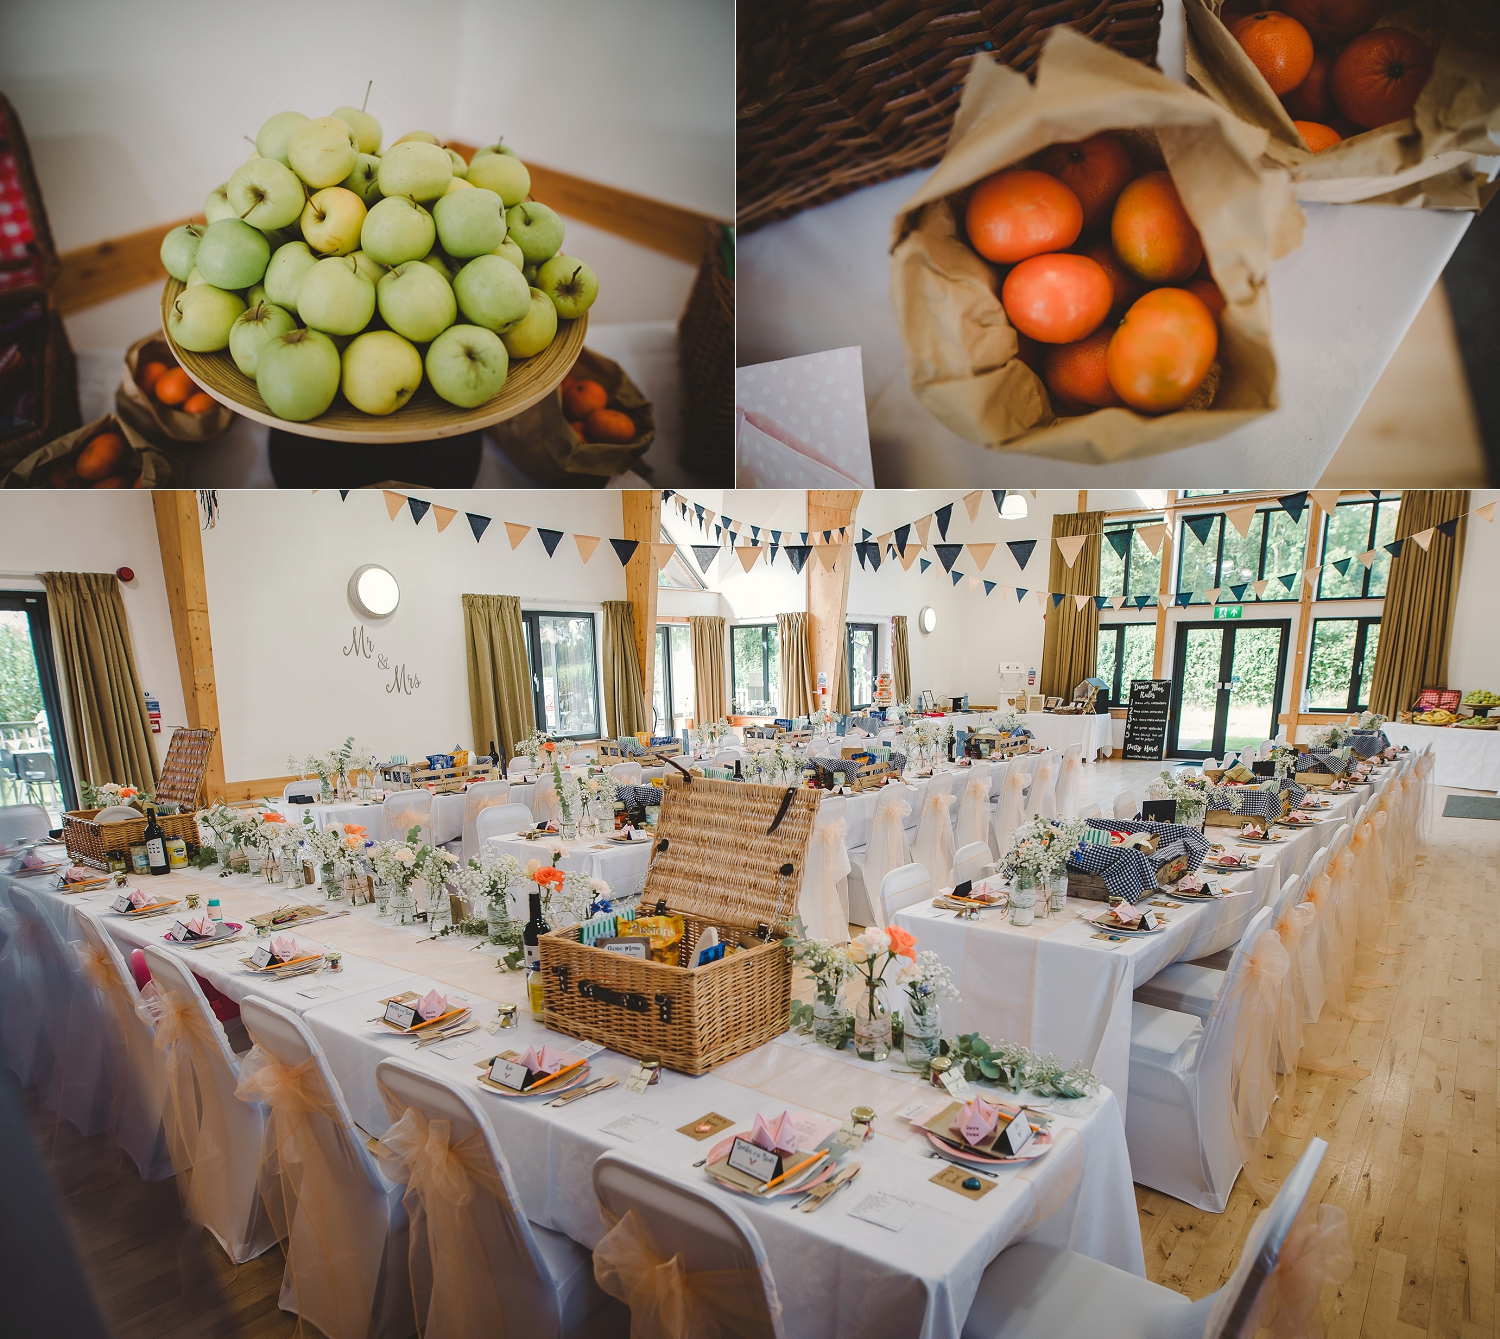 Jam_Jar_Wedding_Rock_Village_Hall_0077.jpg